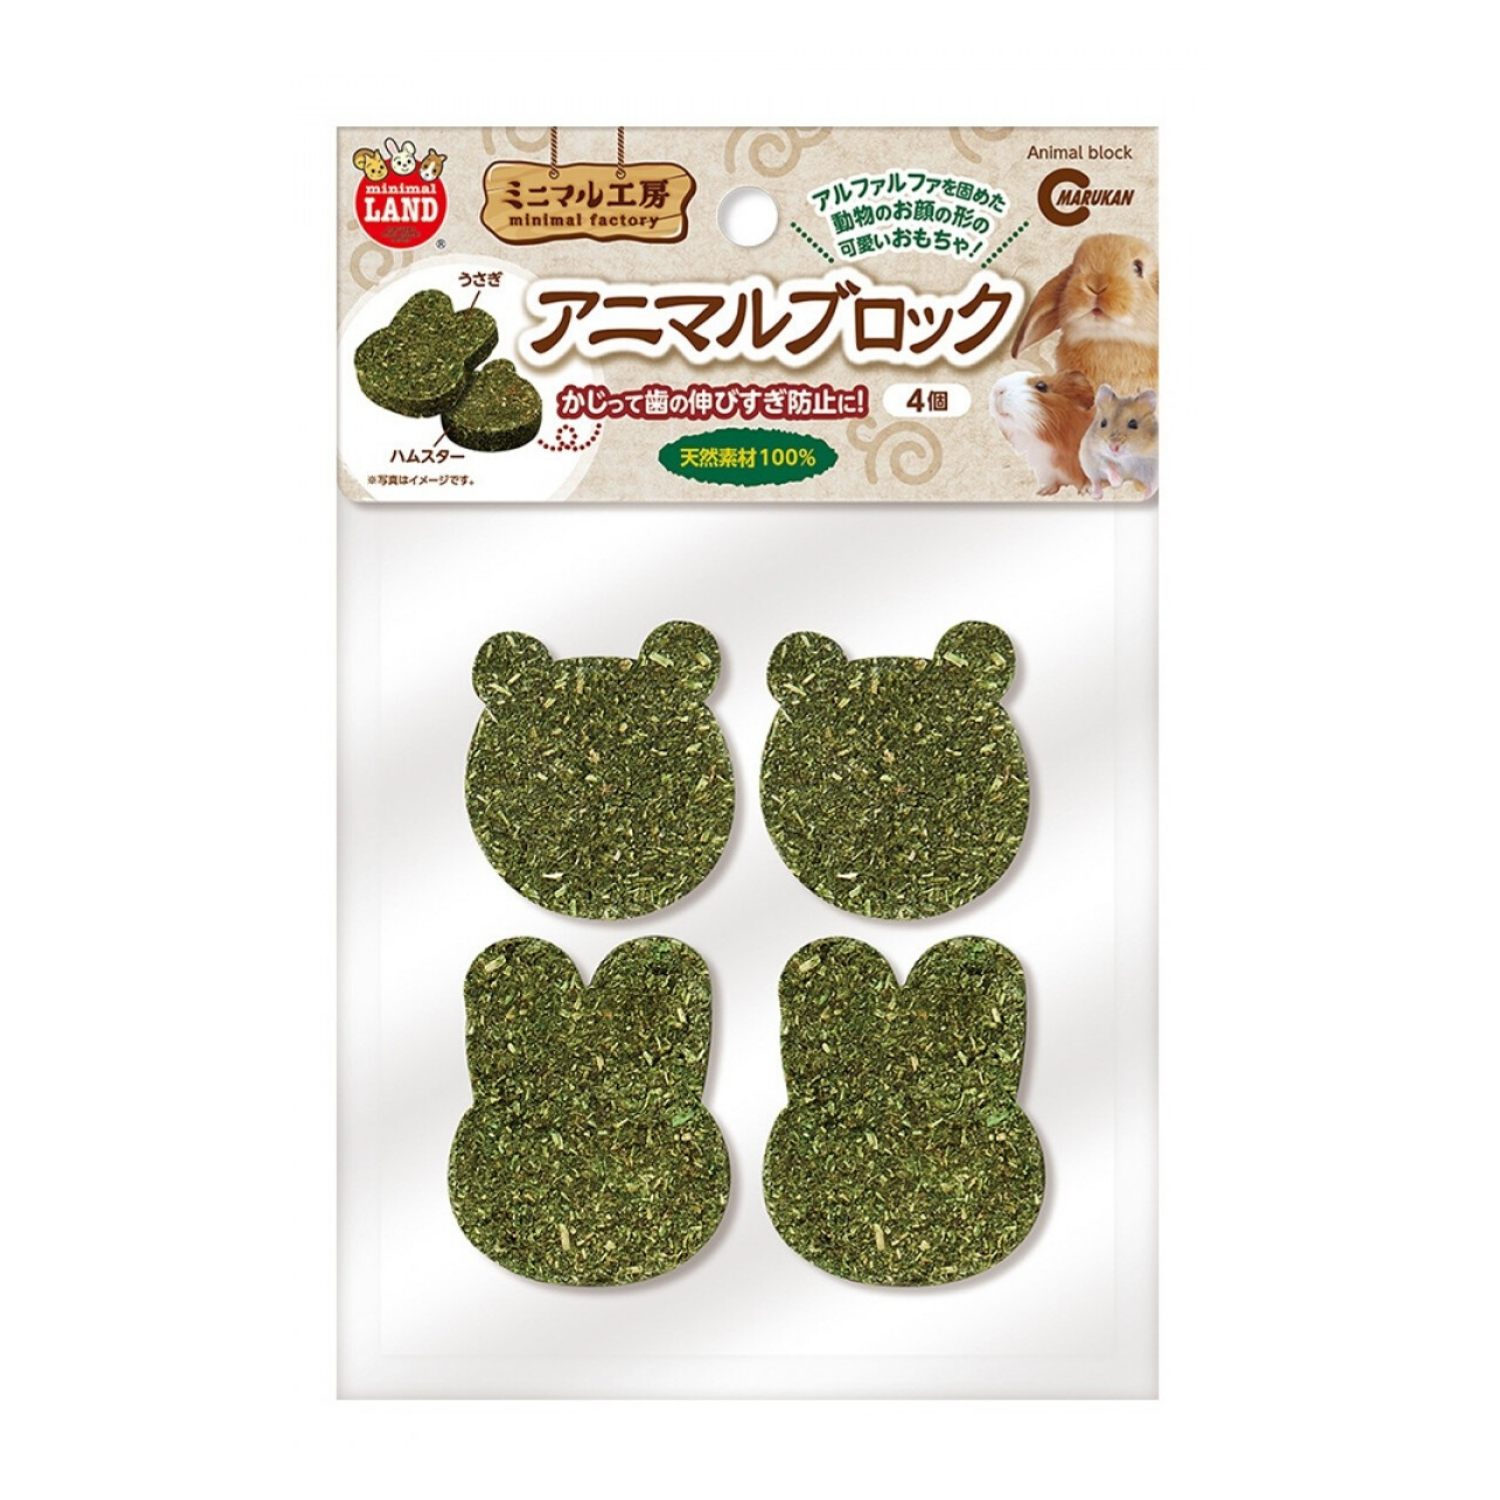 Marukan Animal Blocks Alfalfa - 4pcs